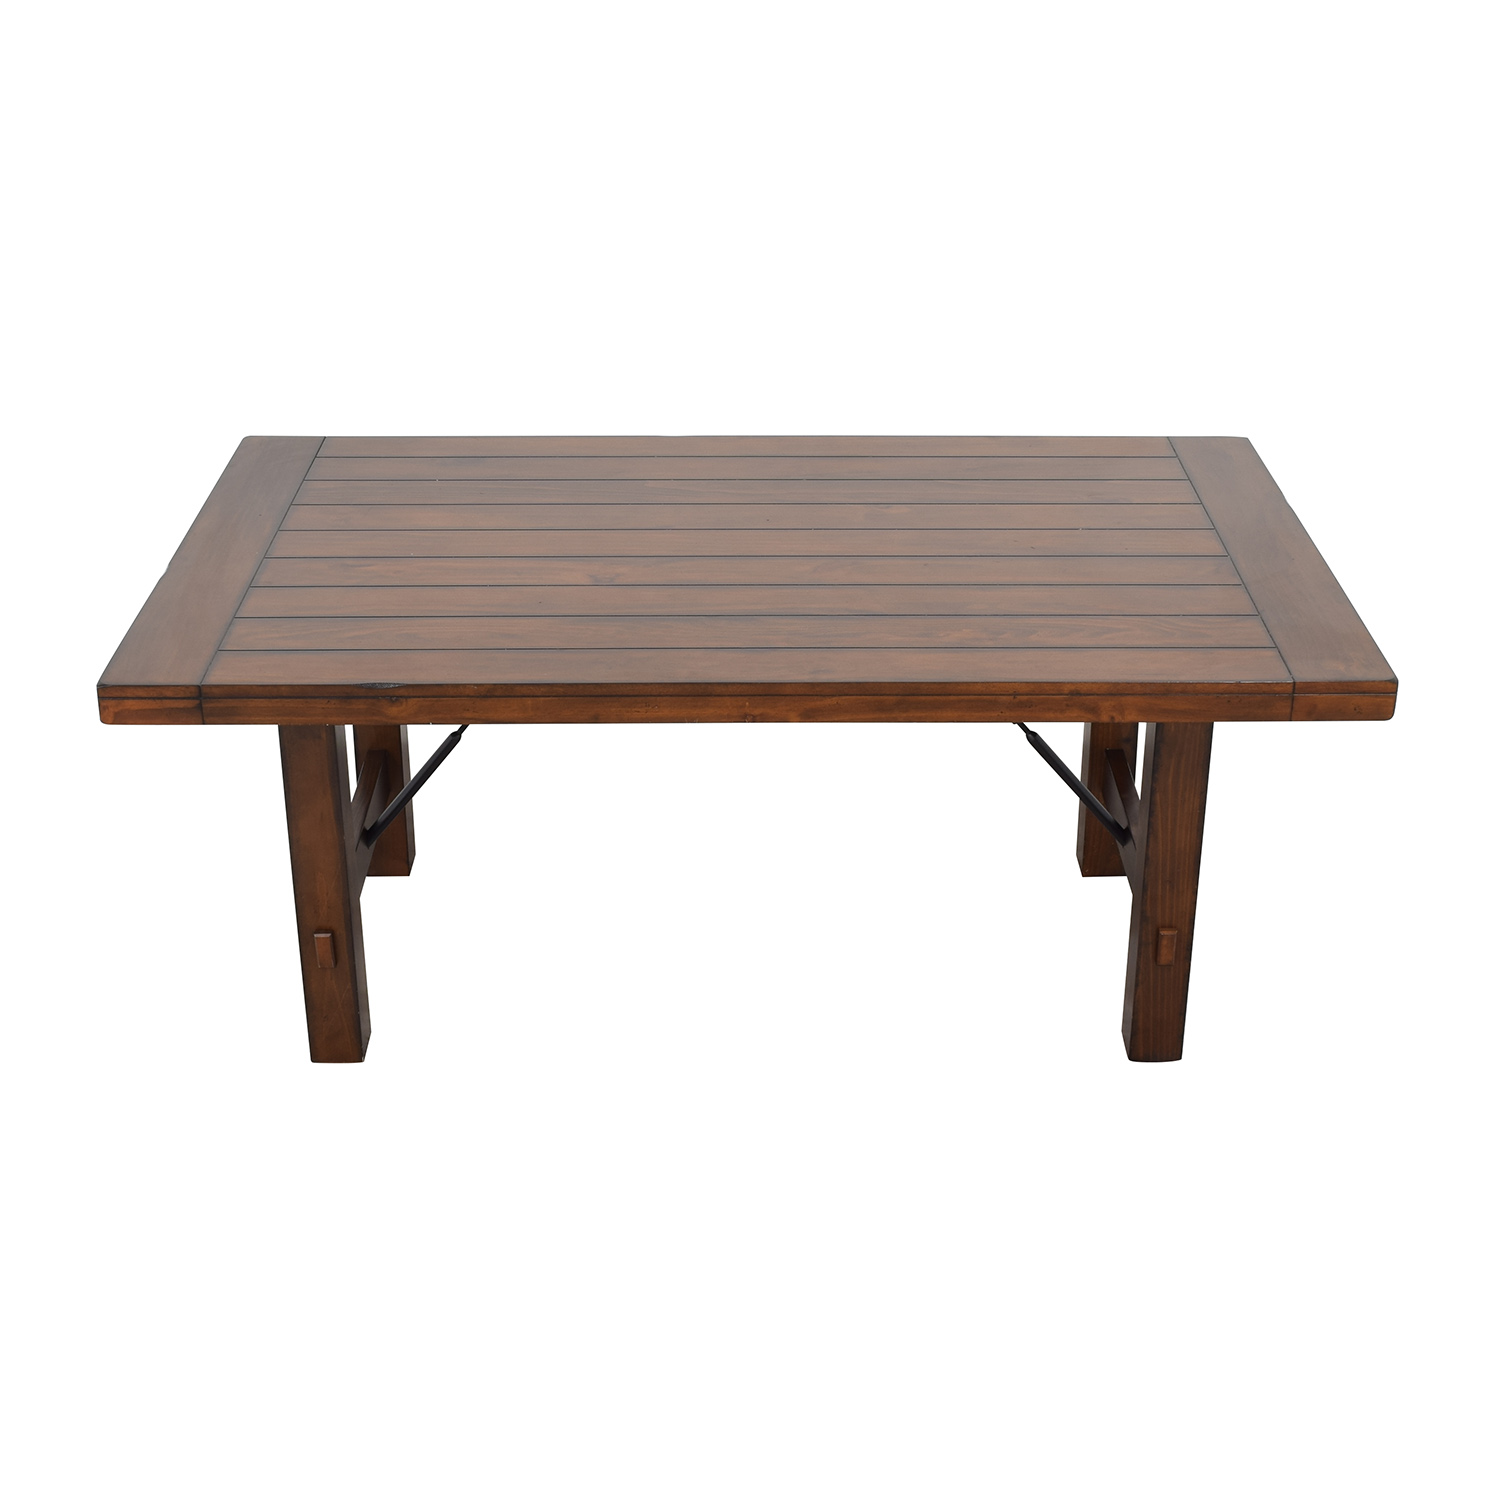 Wayfair Wayfair Dining Room Table Dinner Tables